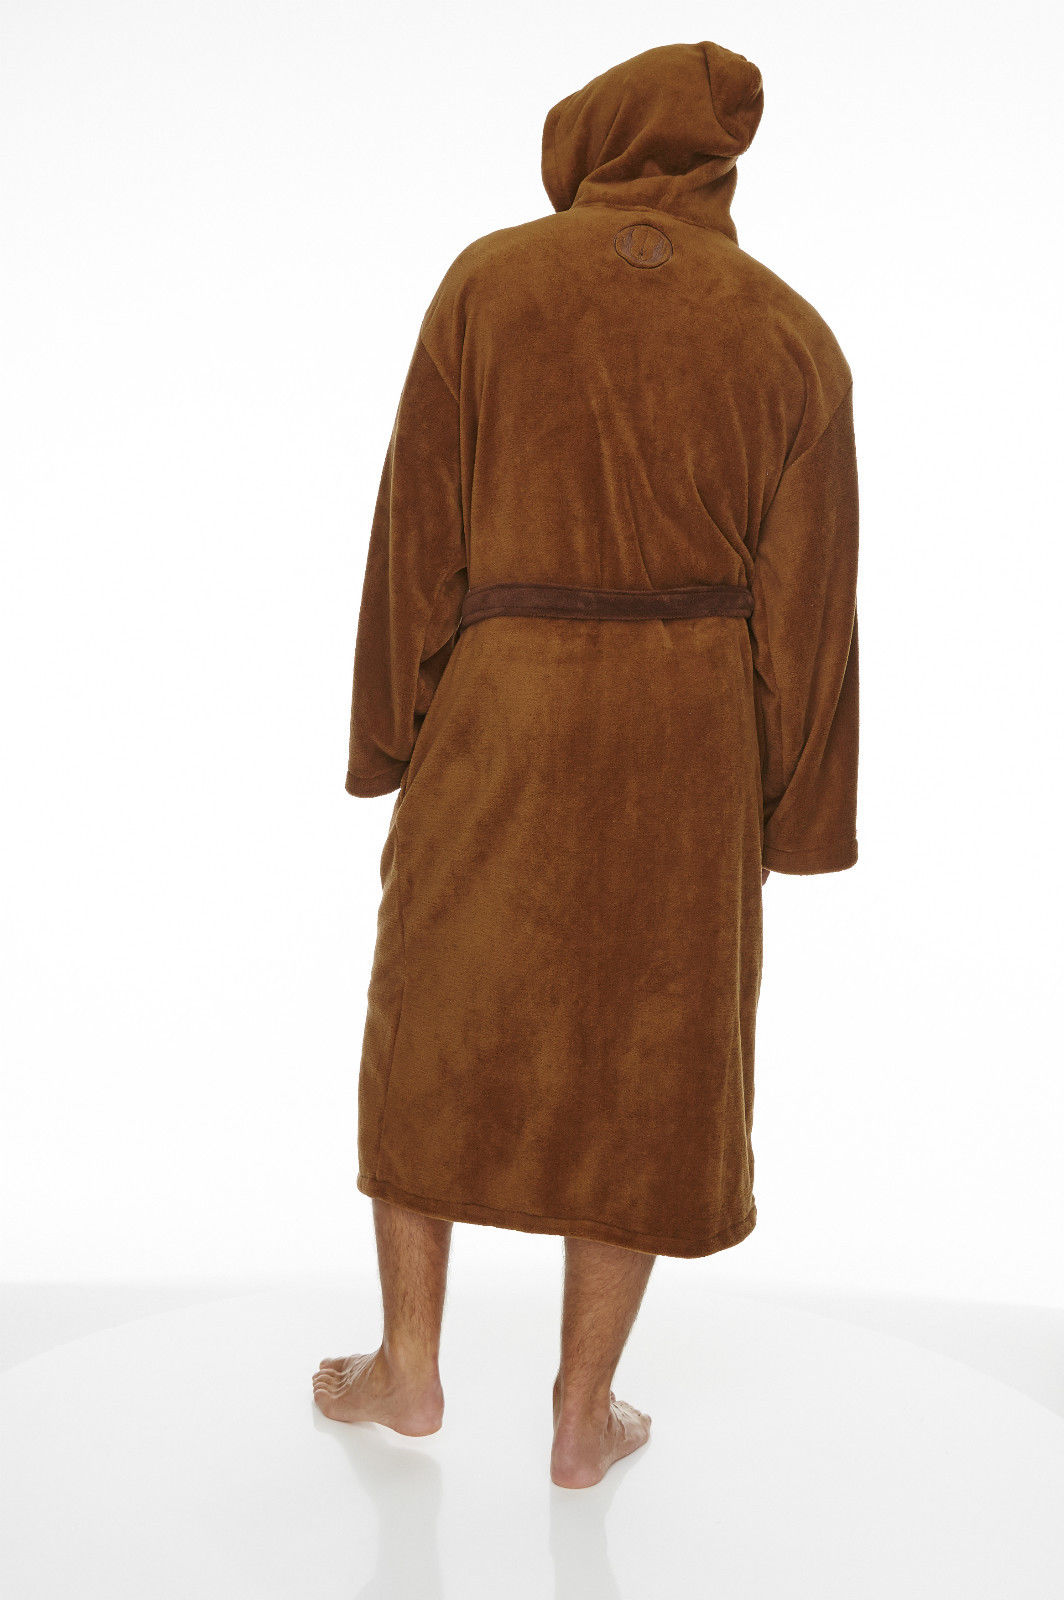 Star Wars Jedi Outfit Hooded Fleece Dressing Gown Bathrobe – Simply ...